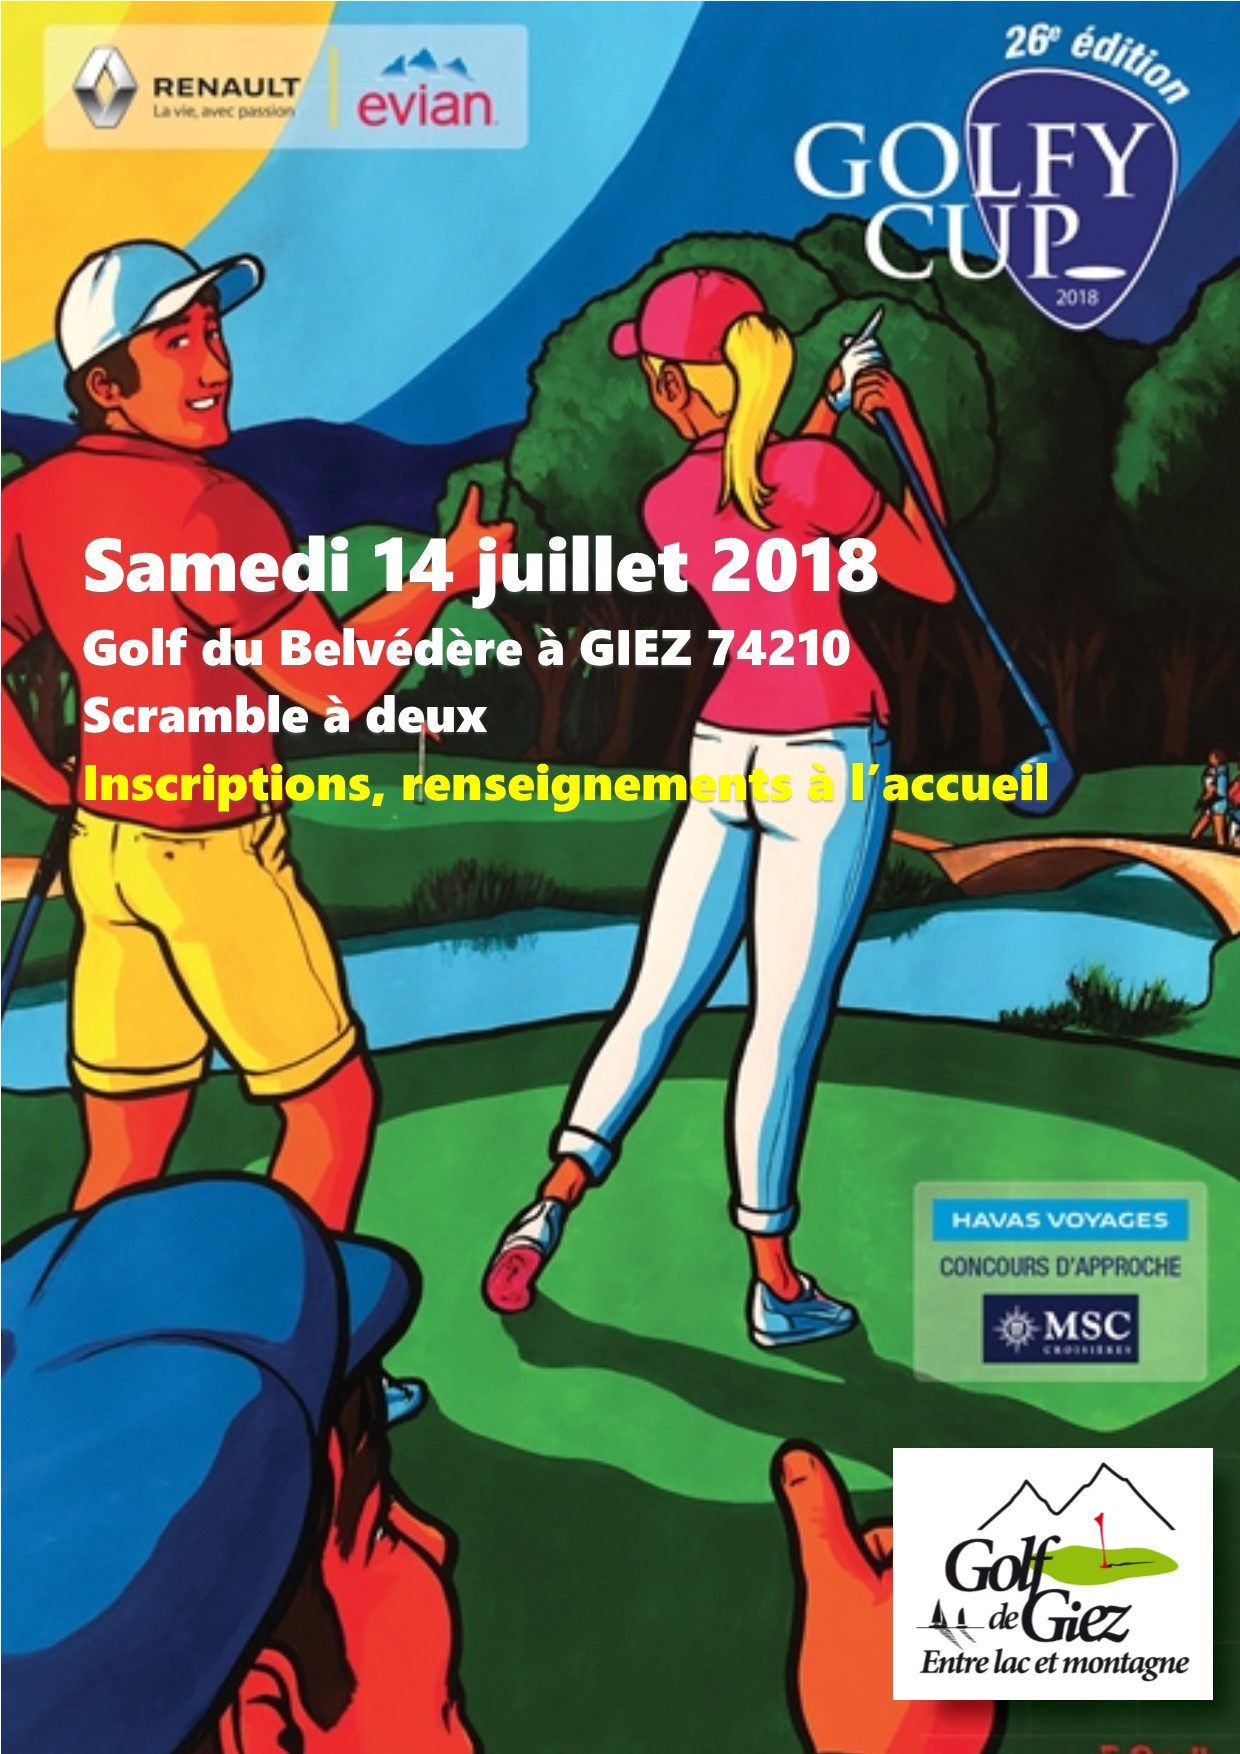 Golfycup 2018